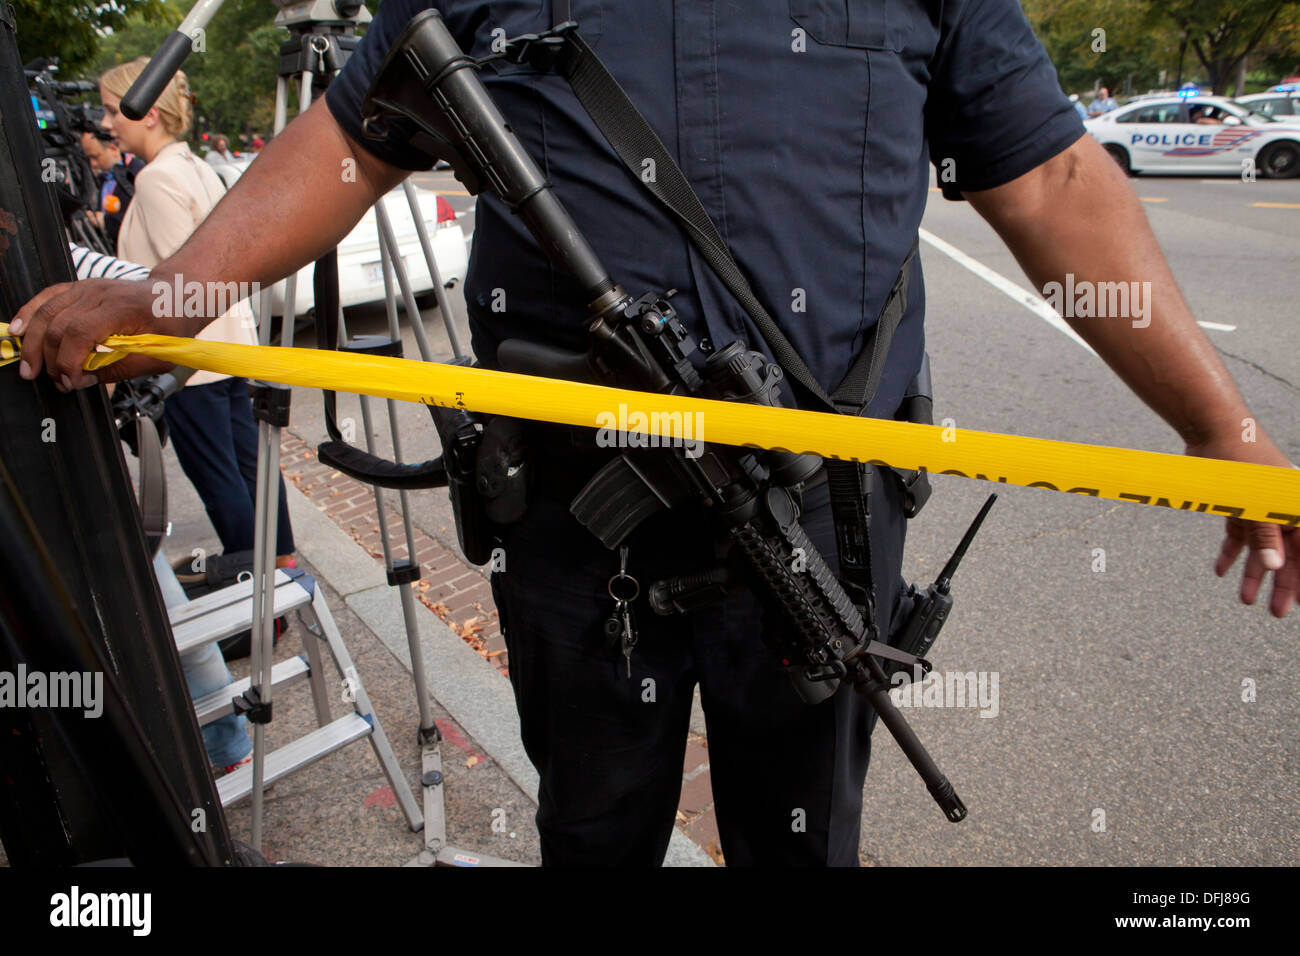 Policeman carrying a semi-auto rifle putting up police line tape at a crime scene - Washington, DC USA - Stock Image